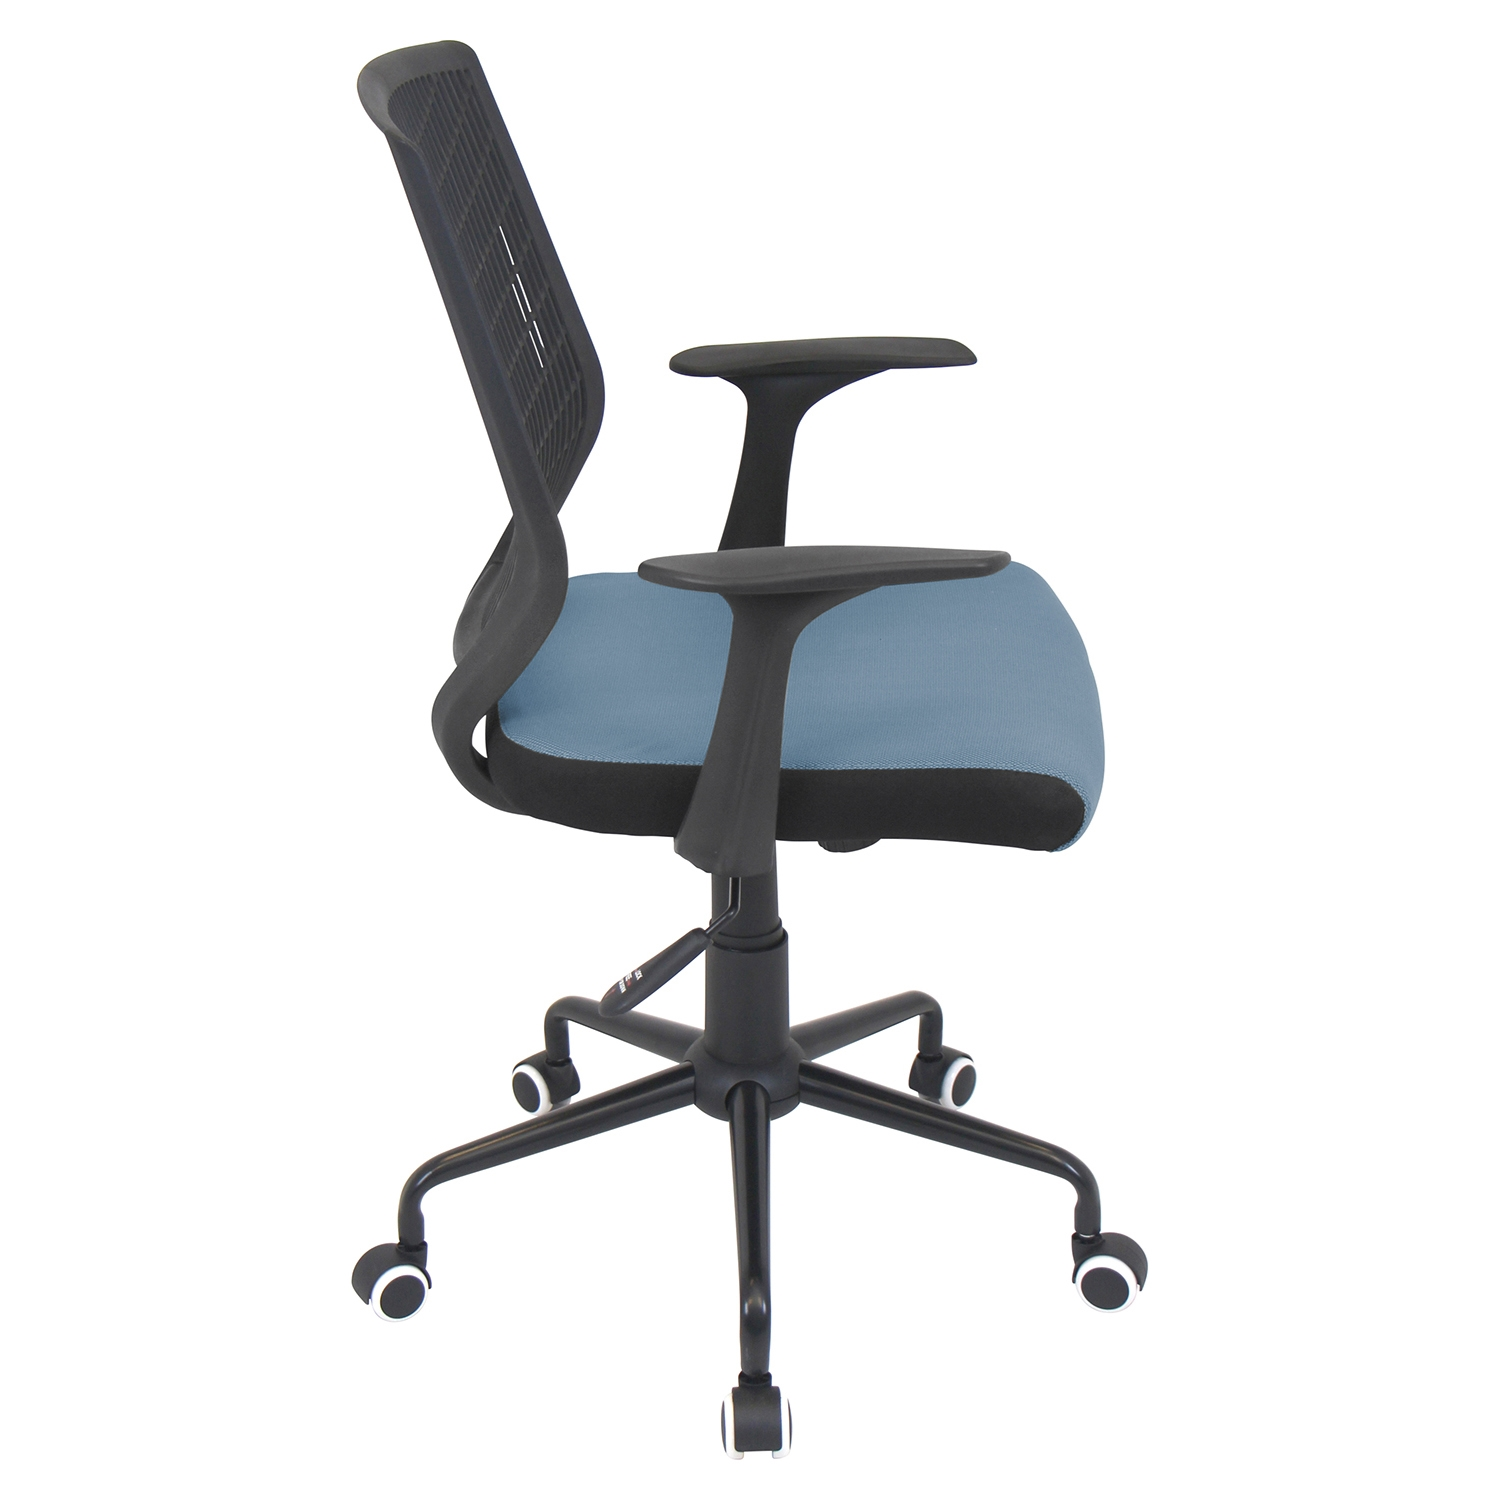 Network Height Adjustable Office Chair - Swivel, Black, Smoked Blue - LMS-OFC-NET-BK-SMBU